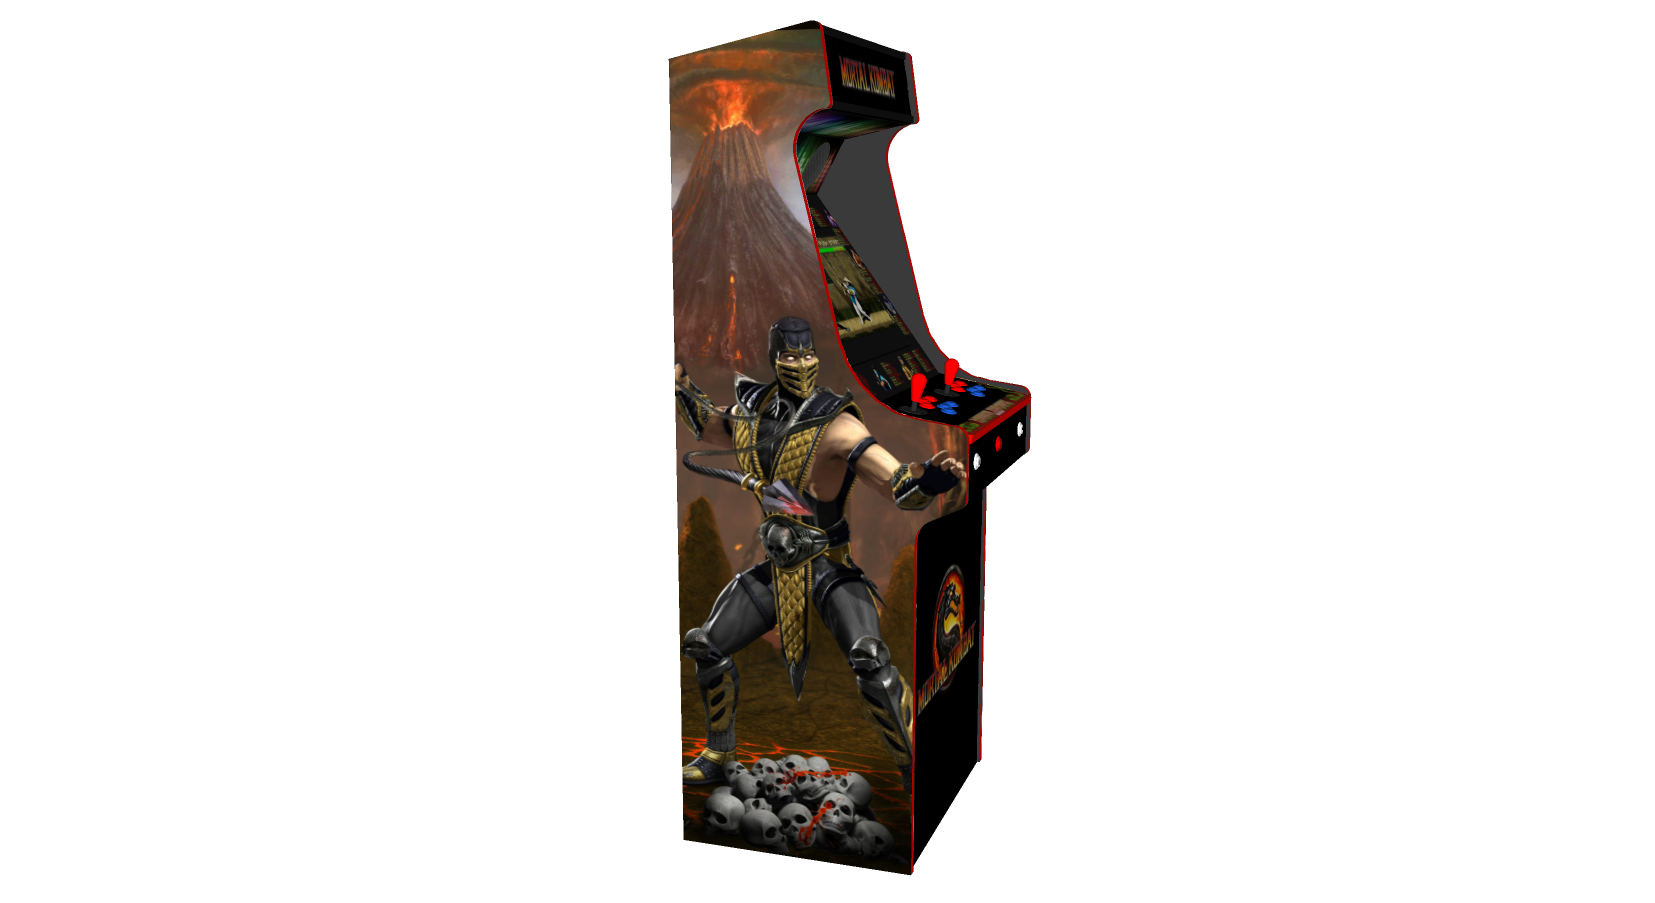 Mortal Kombat Upright Arcade Machine with 645 Games